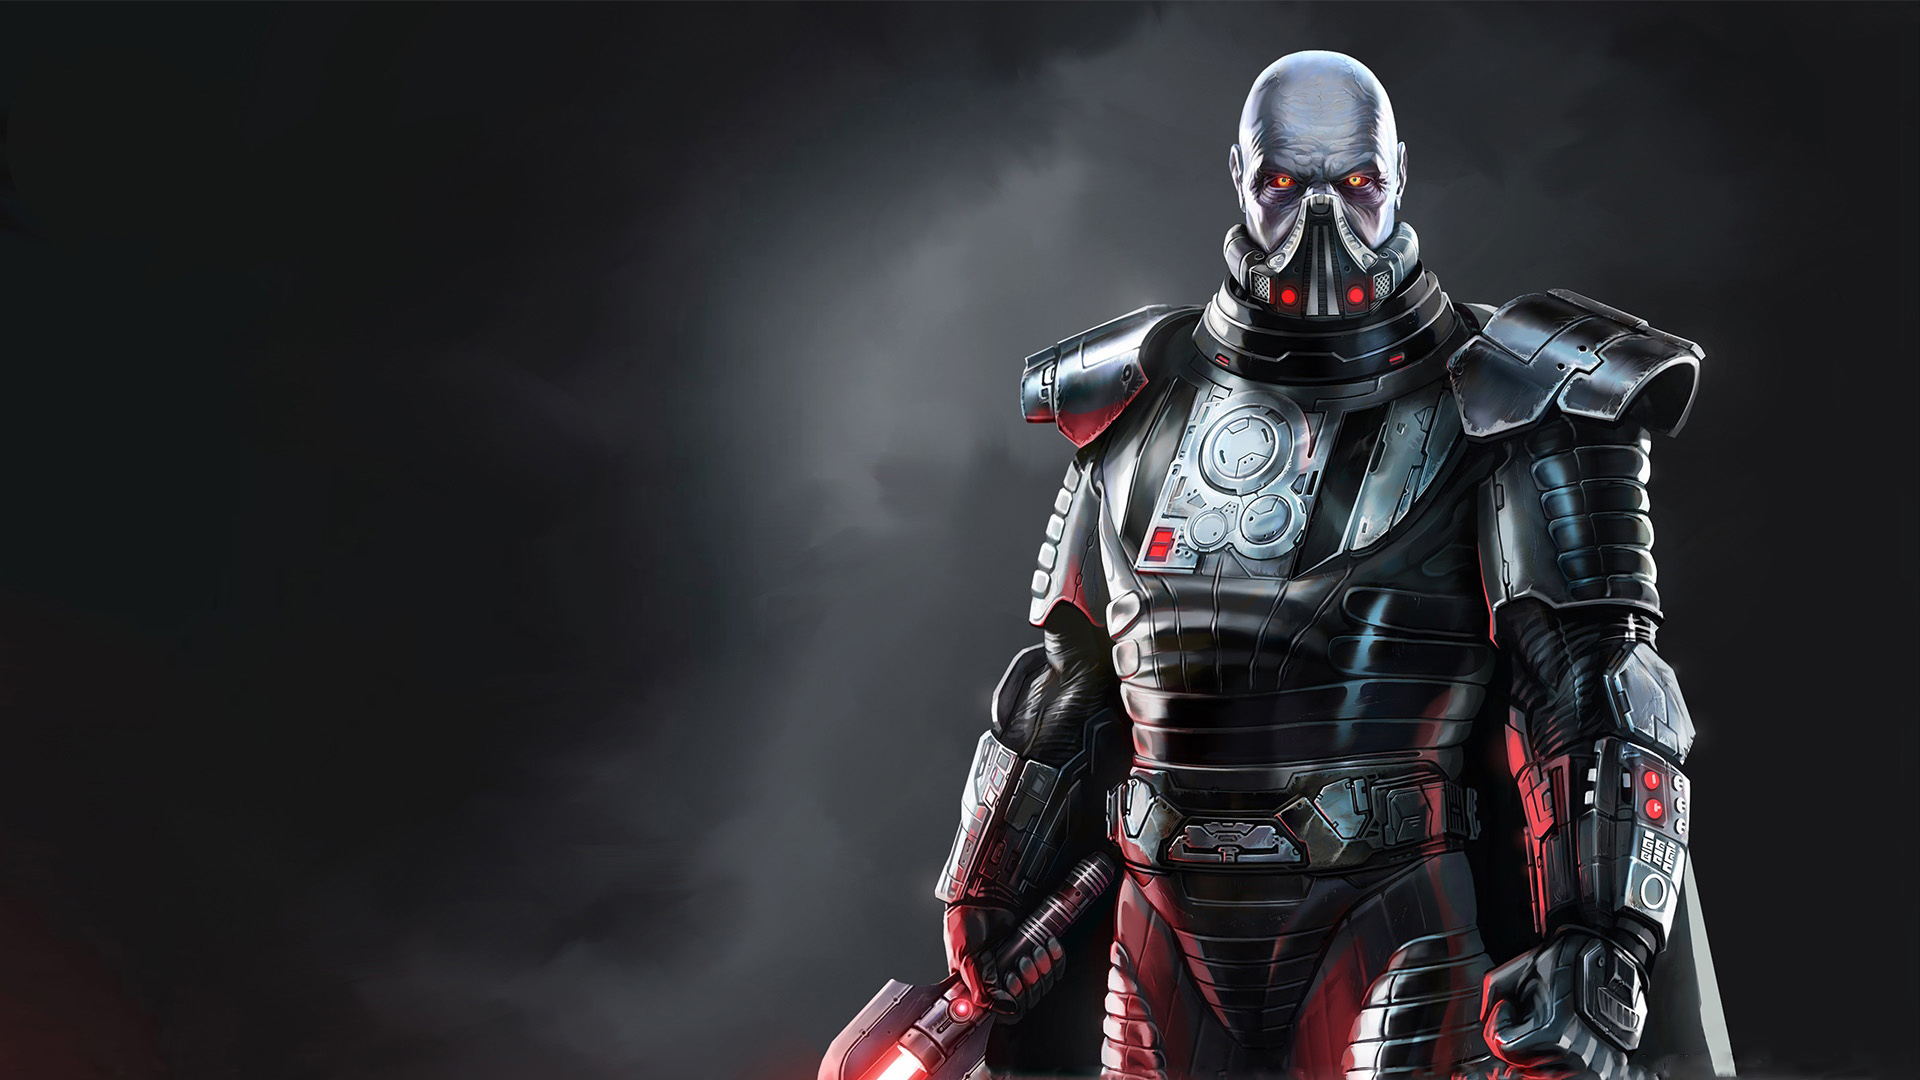 Star Wars Old Republic Wallpaper: SWTOR Pics Image